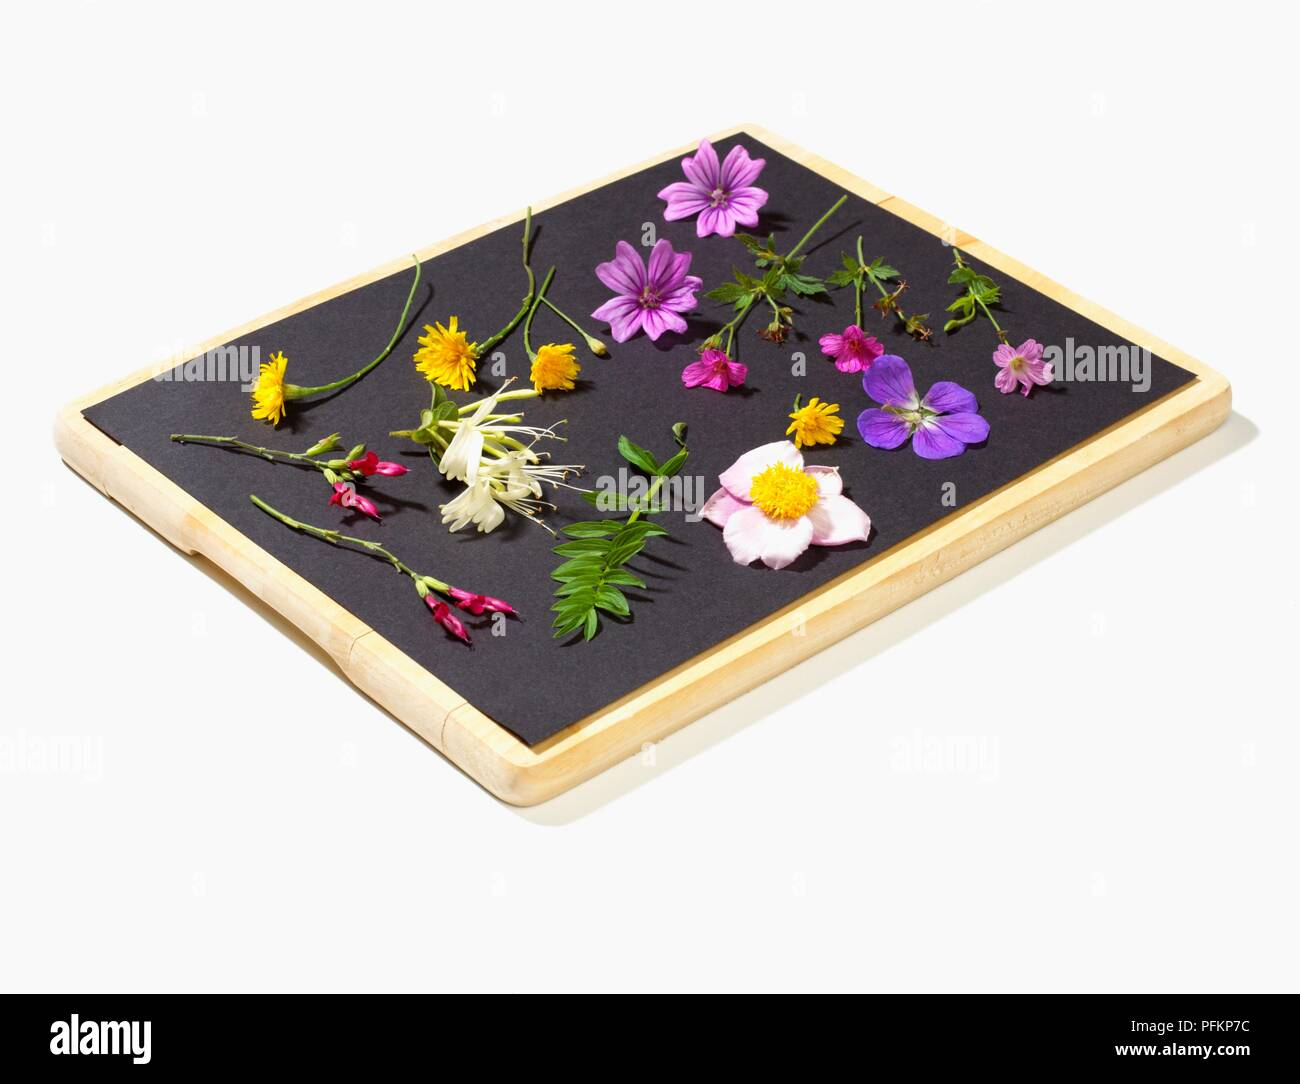 Fresh flowers laid out on blotting paper pressing flowers stock fresh flowers laid out on blotting paper pressing flowers mightylinksfo